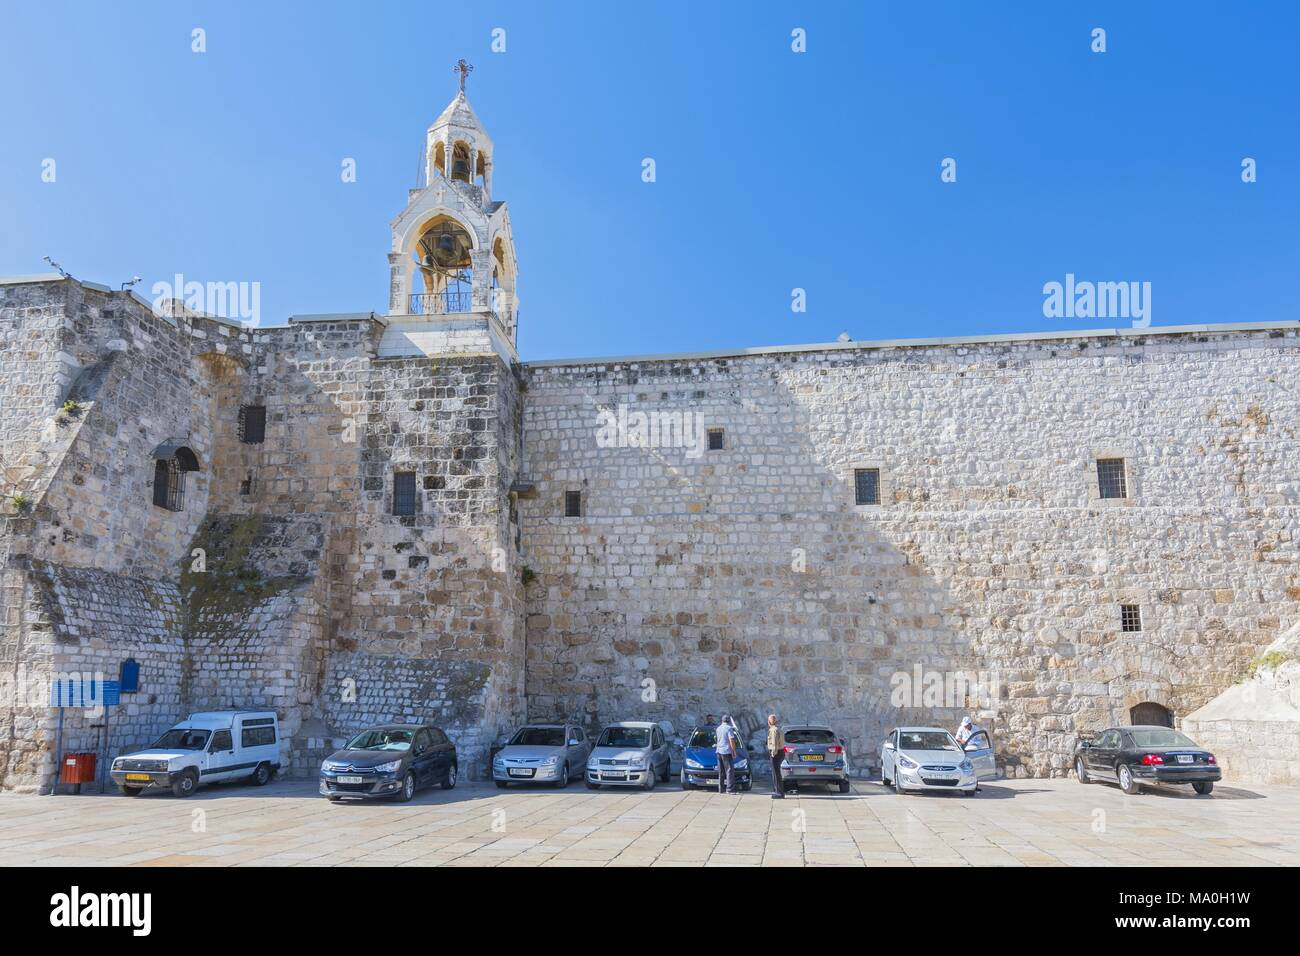 The Church of the Nativity in Manger Square, Bethlehem, Palestine. It takes its name from the manger where Jesus is said to have been born which, acco - Stock Image